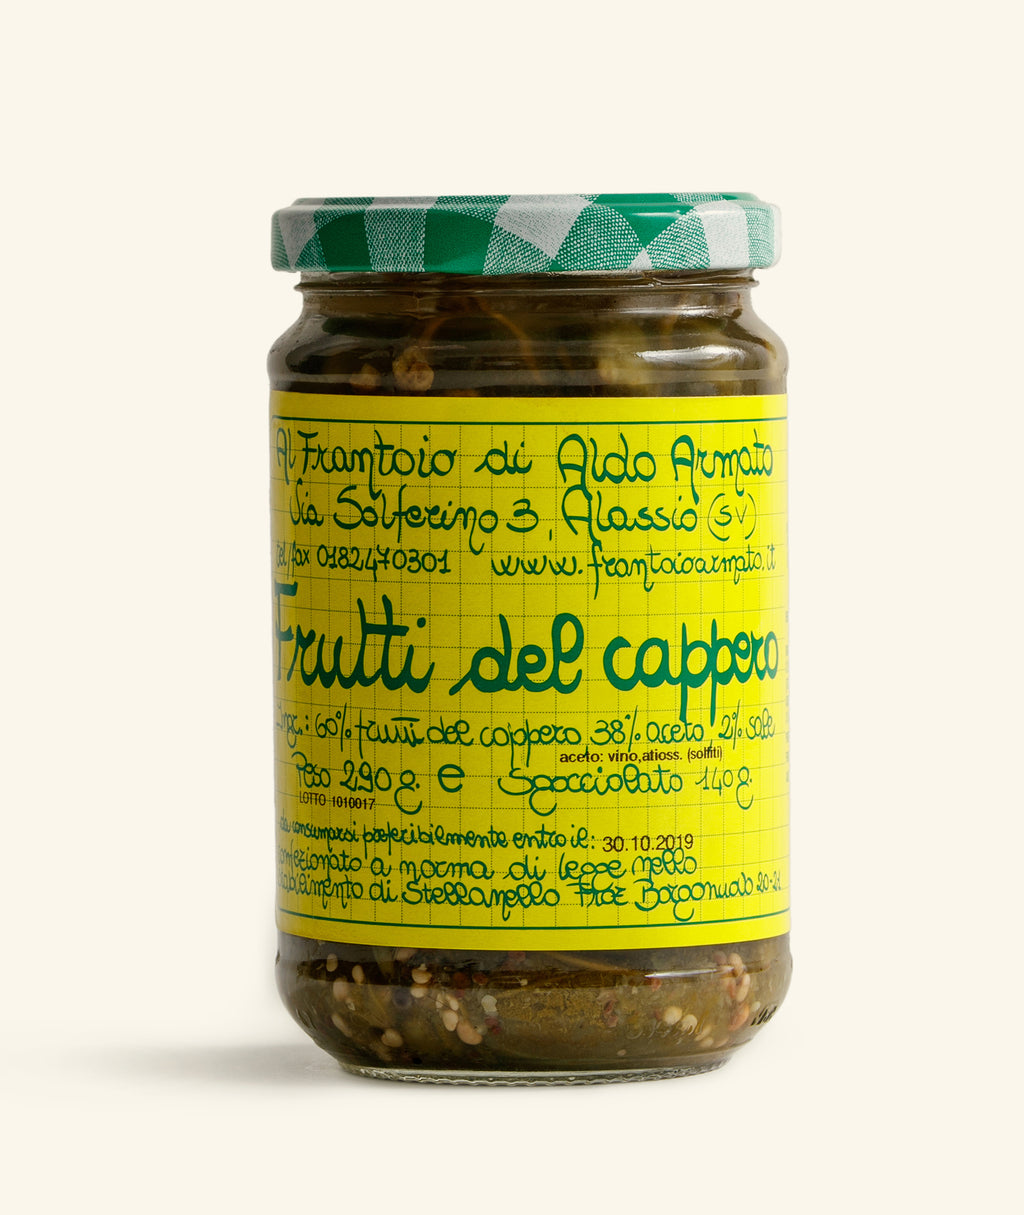 Frutti del Cappero - Caper Fruits